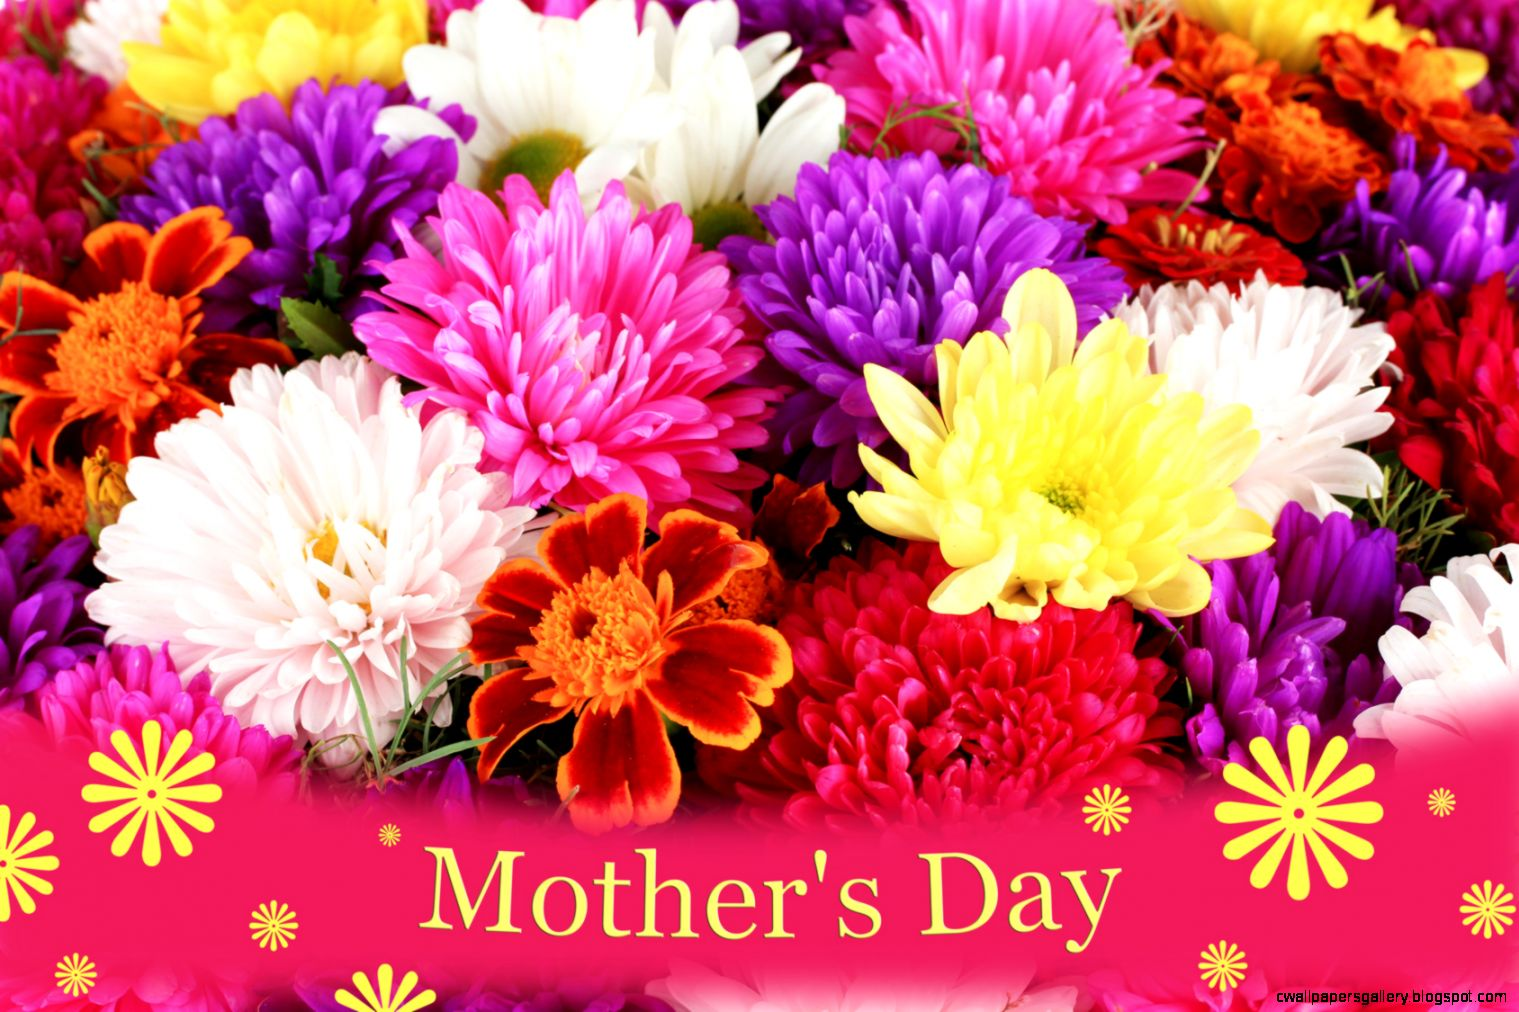 We are providing you Happy Mothers Day Flowers bouquets and